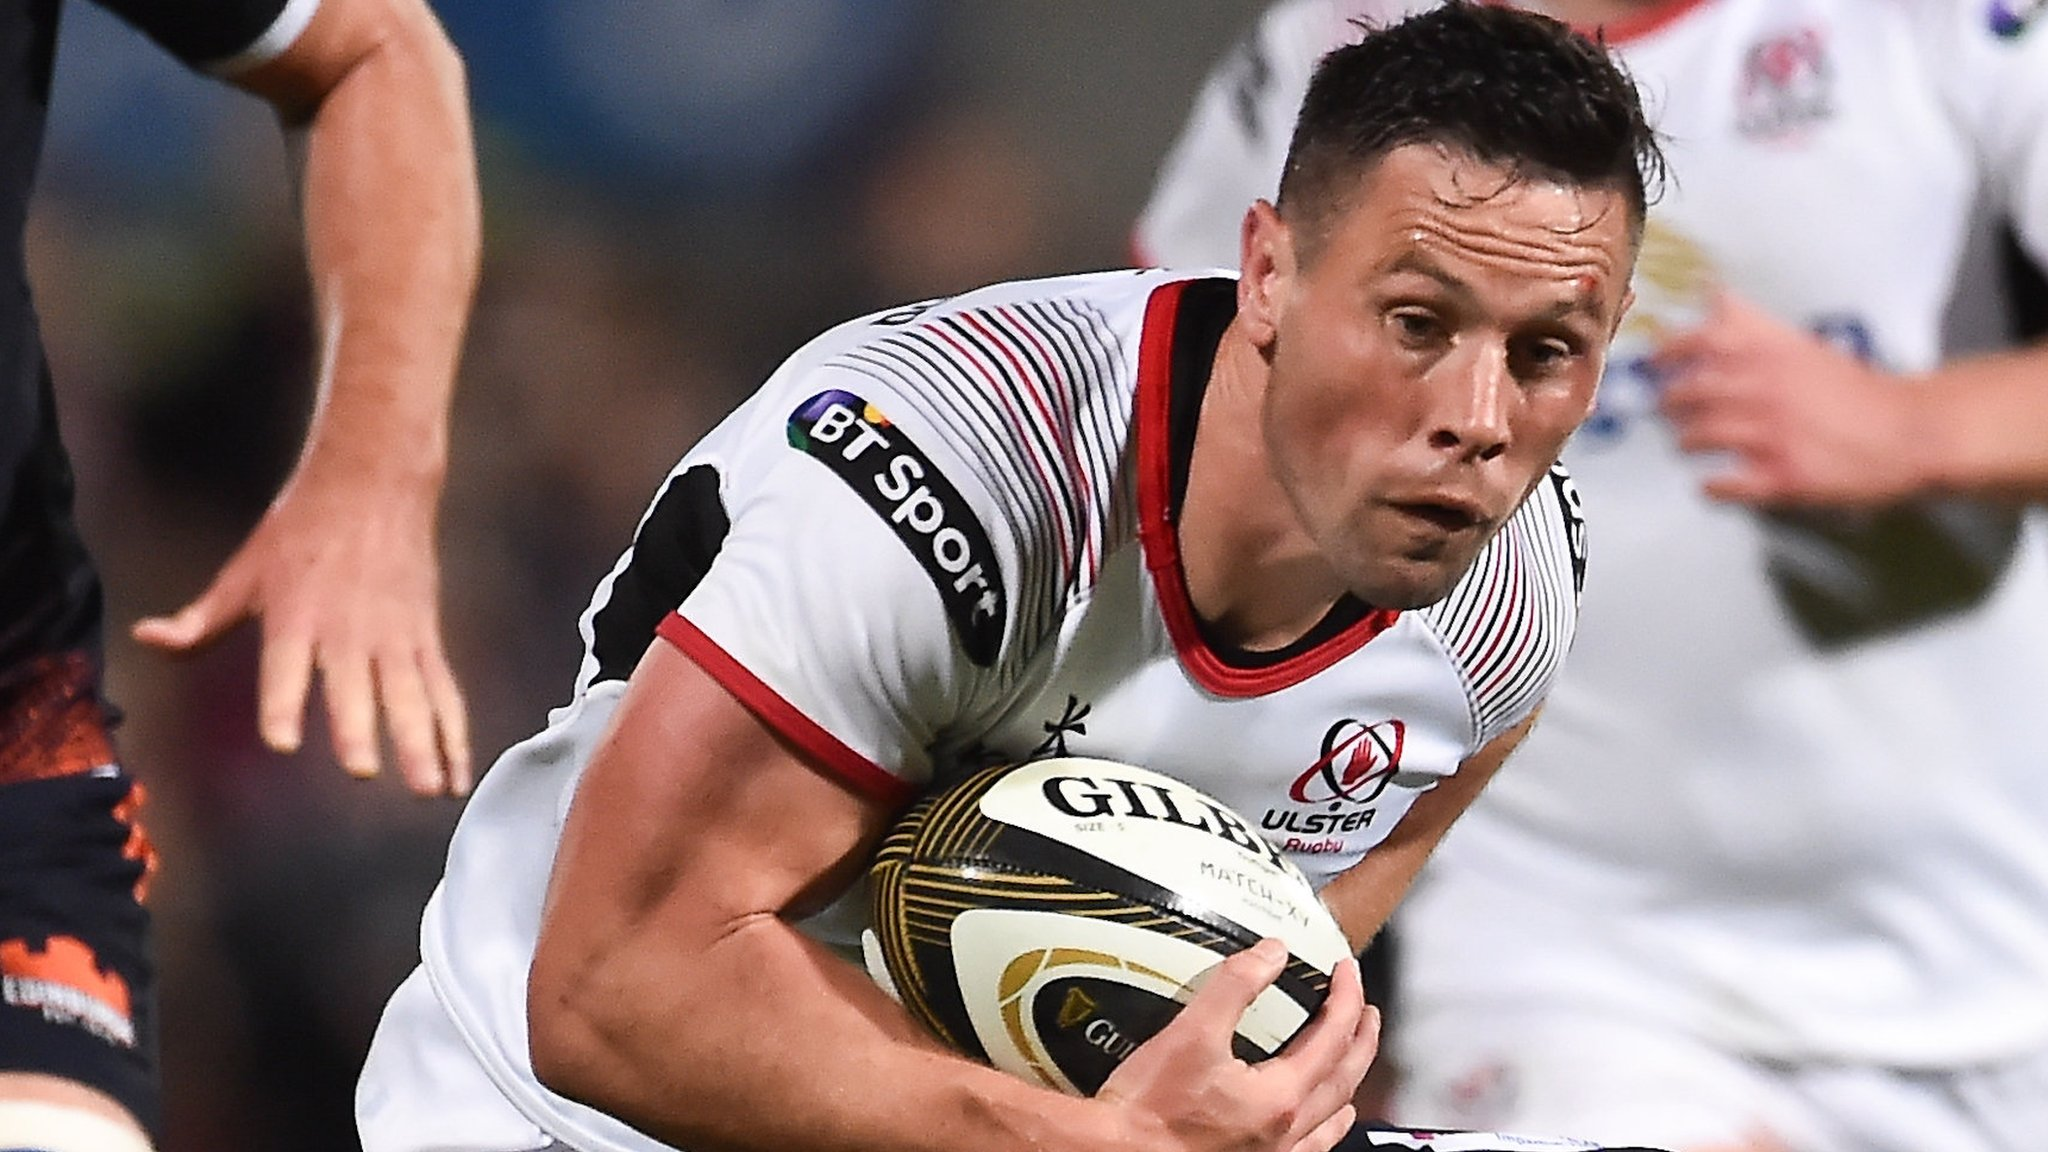 Pro14: Ulster wait on fitness of Cooney and Addison for Cheetahs game